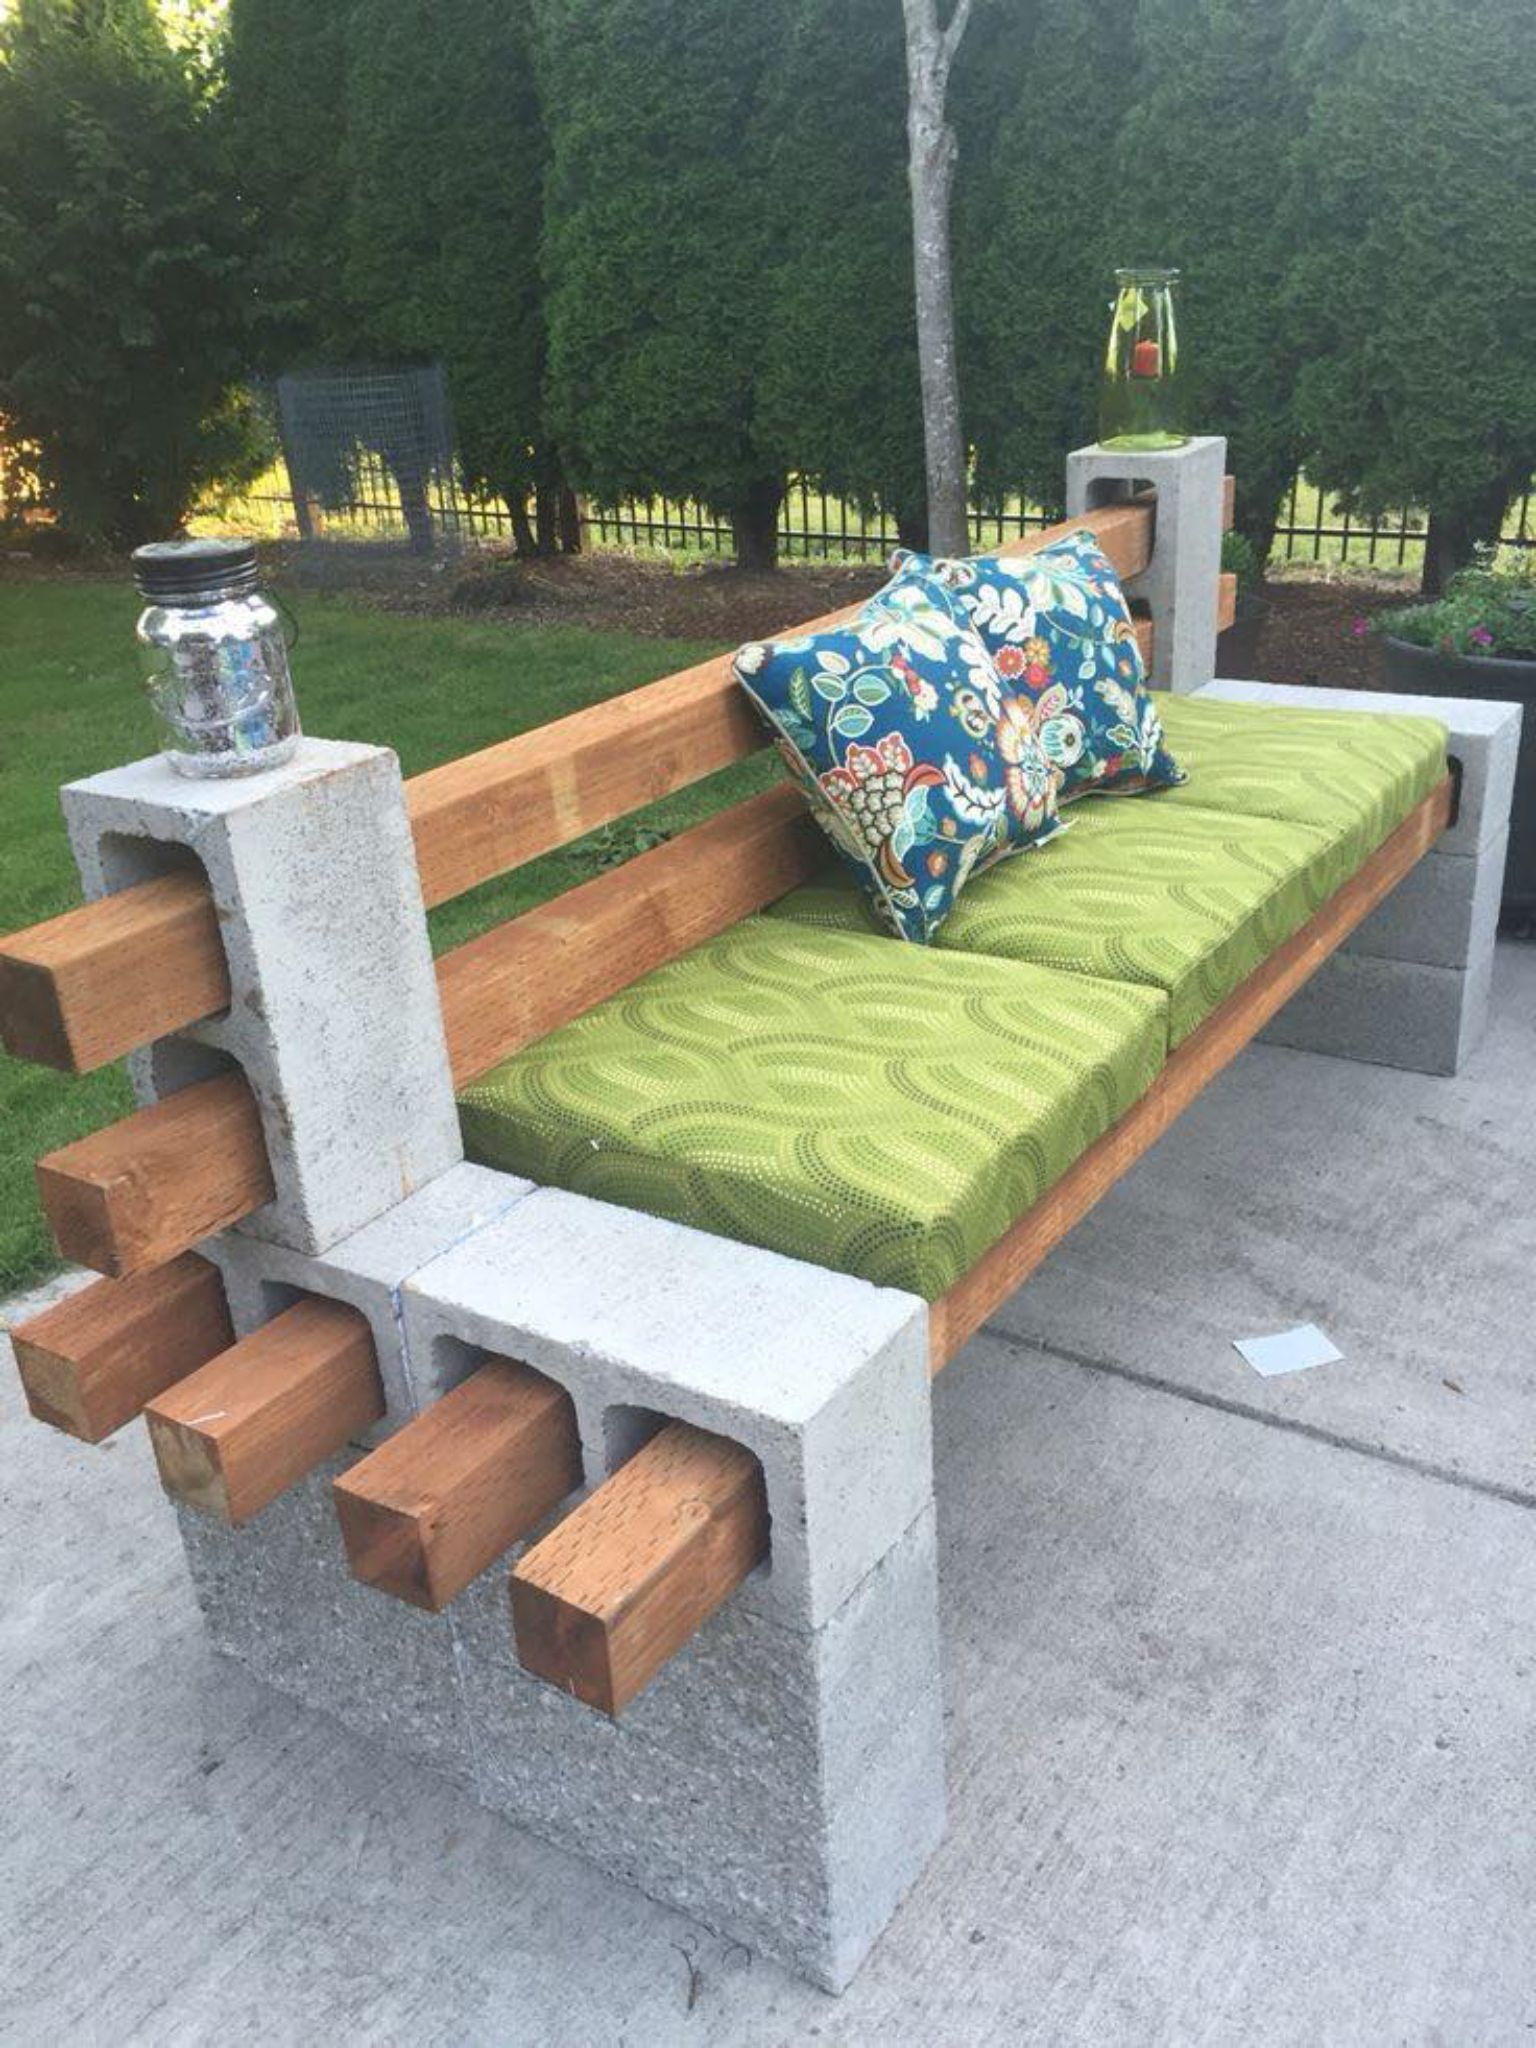 13 DIY Patio Furniture Ideas that Are Simple and Cheap Page 2 of